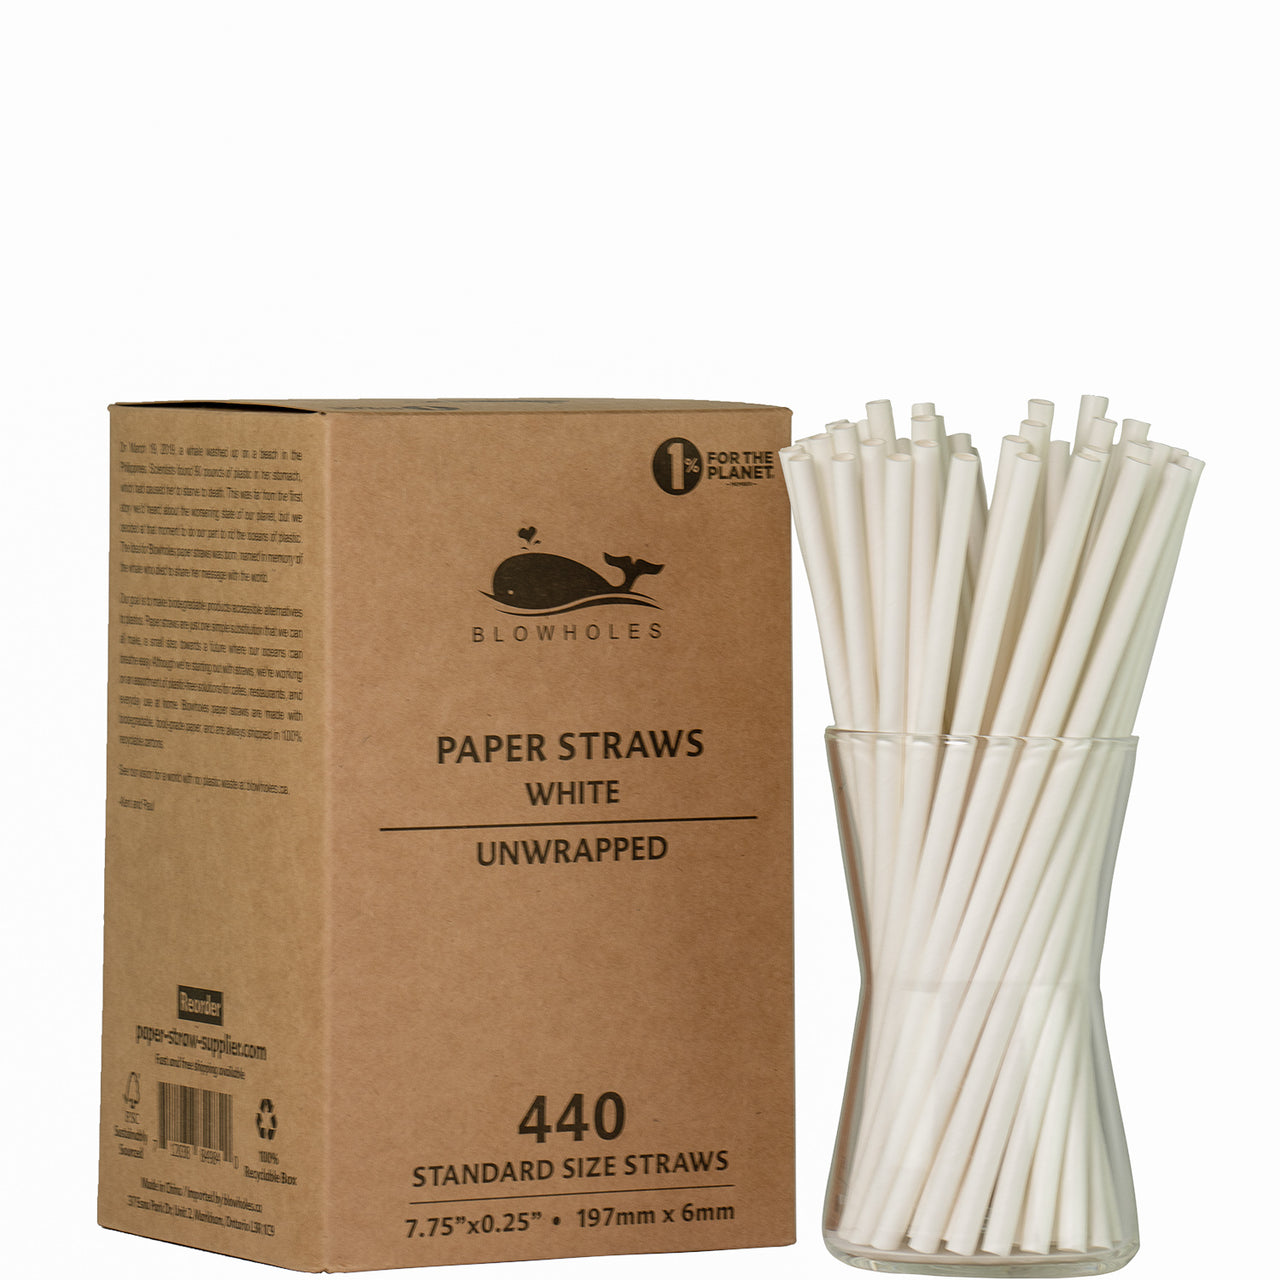 Blowholes Standard Size Paper Straws - NOT Individually Wrapped